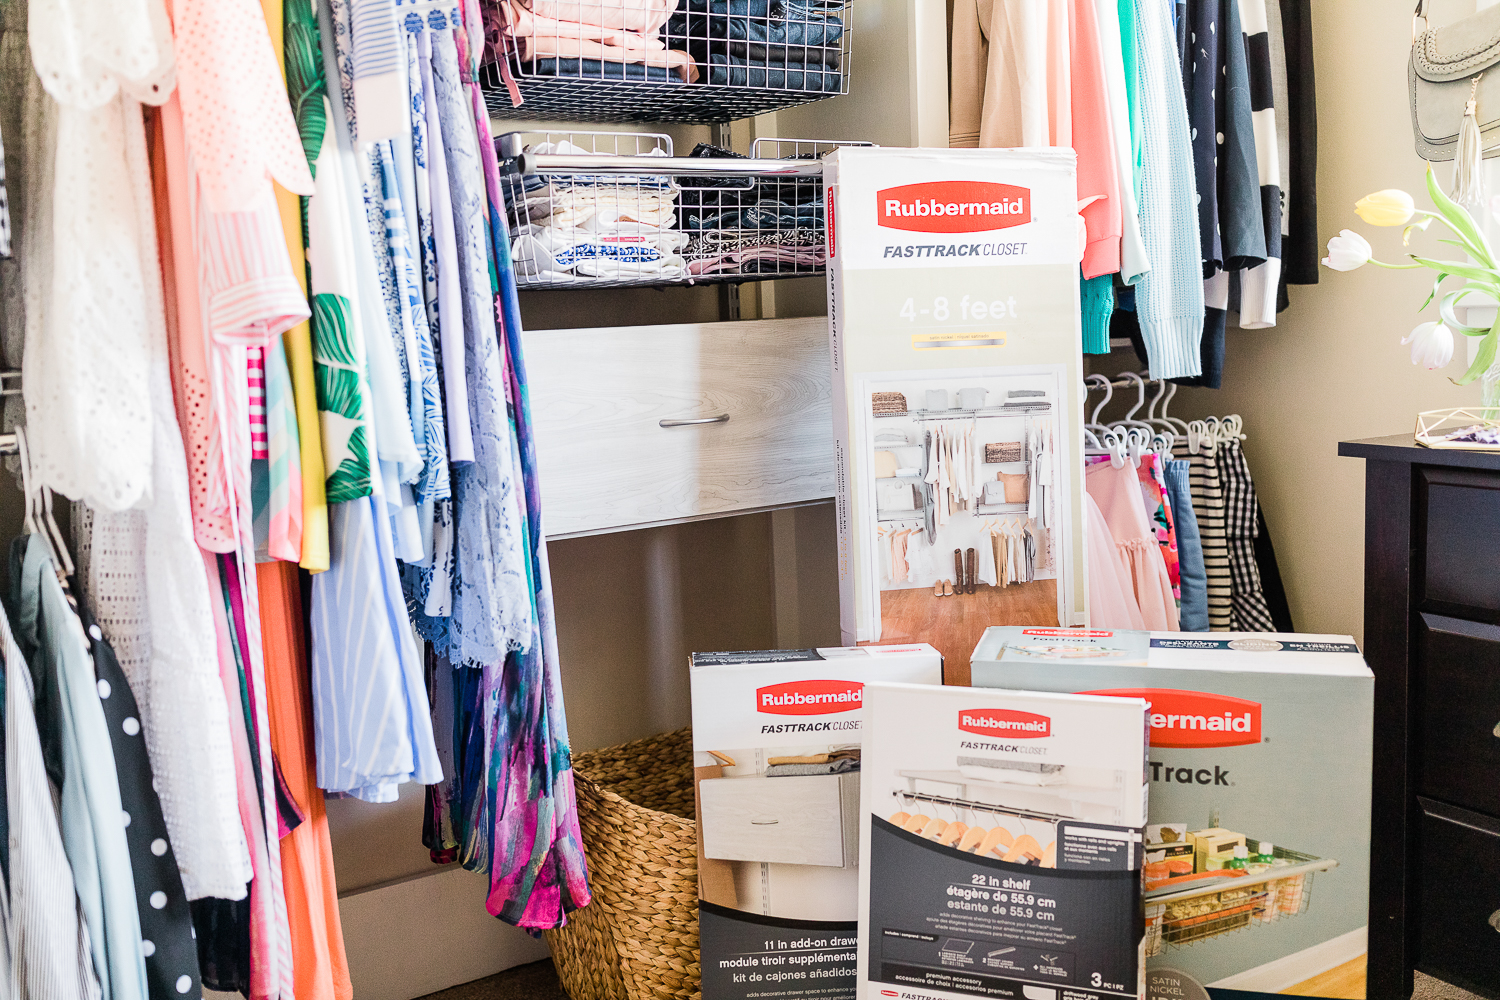 How To: Refresh Your Closet with a Rubbermaid FastTrack Closet System by Stephanie Ziajka from the popular southern lifestyle blog Diary of a Debutante, Rubbermaid FastTrack Closet Organization System review and install, affordable custom closet system